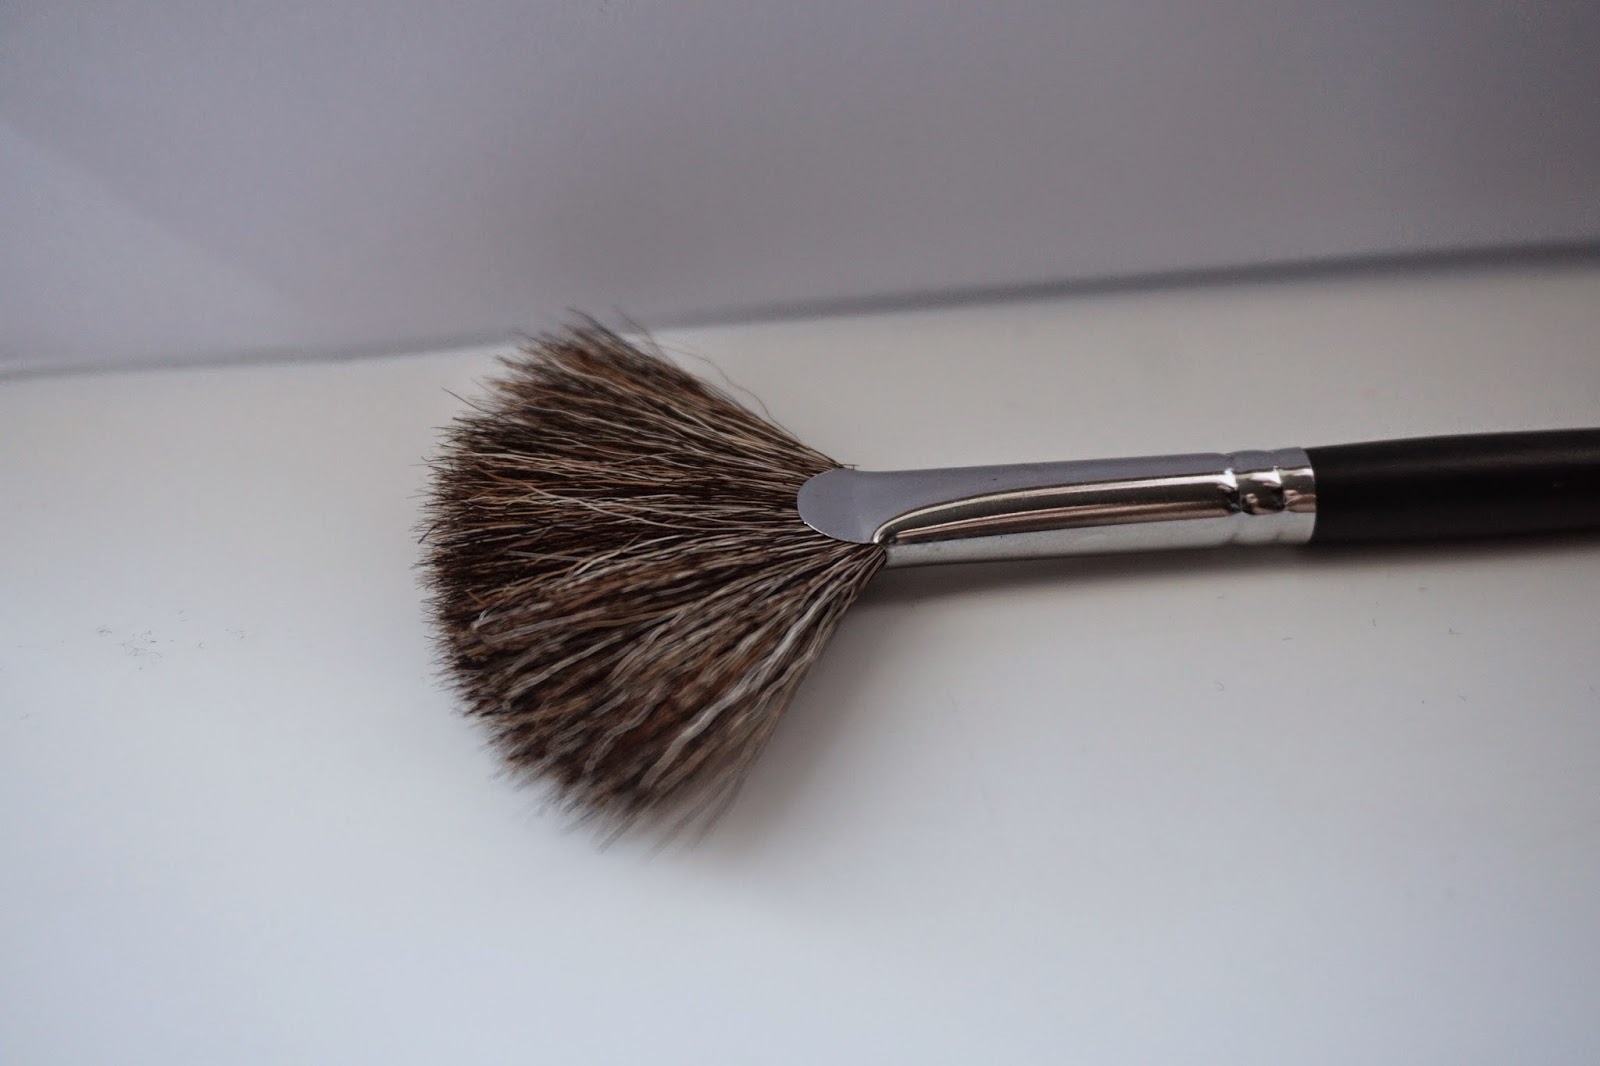 Crown Brush Review C600 Design Fan - Dusty Foxes Beauty